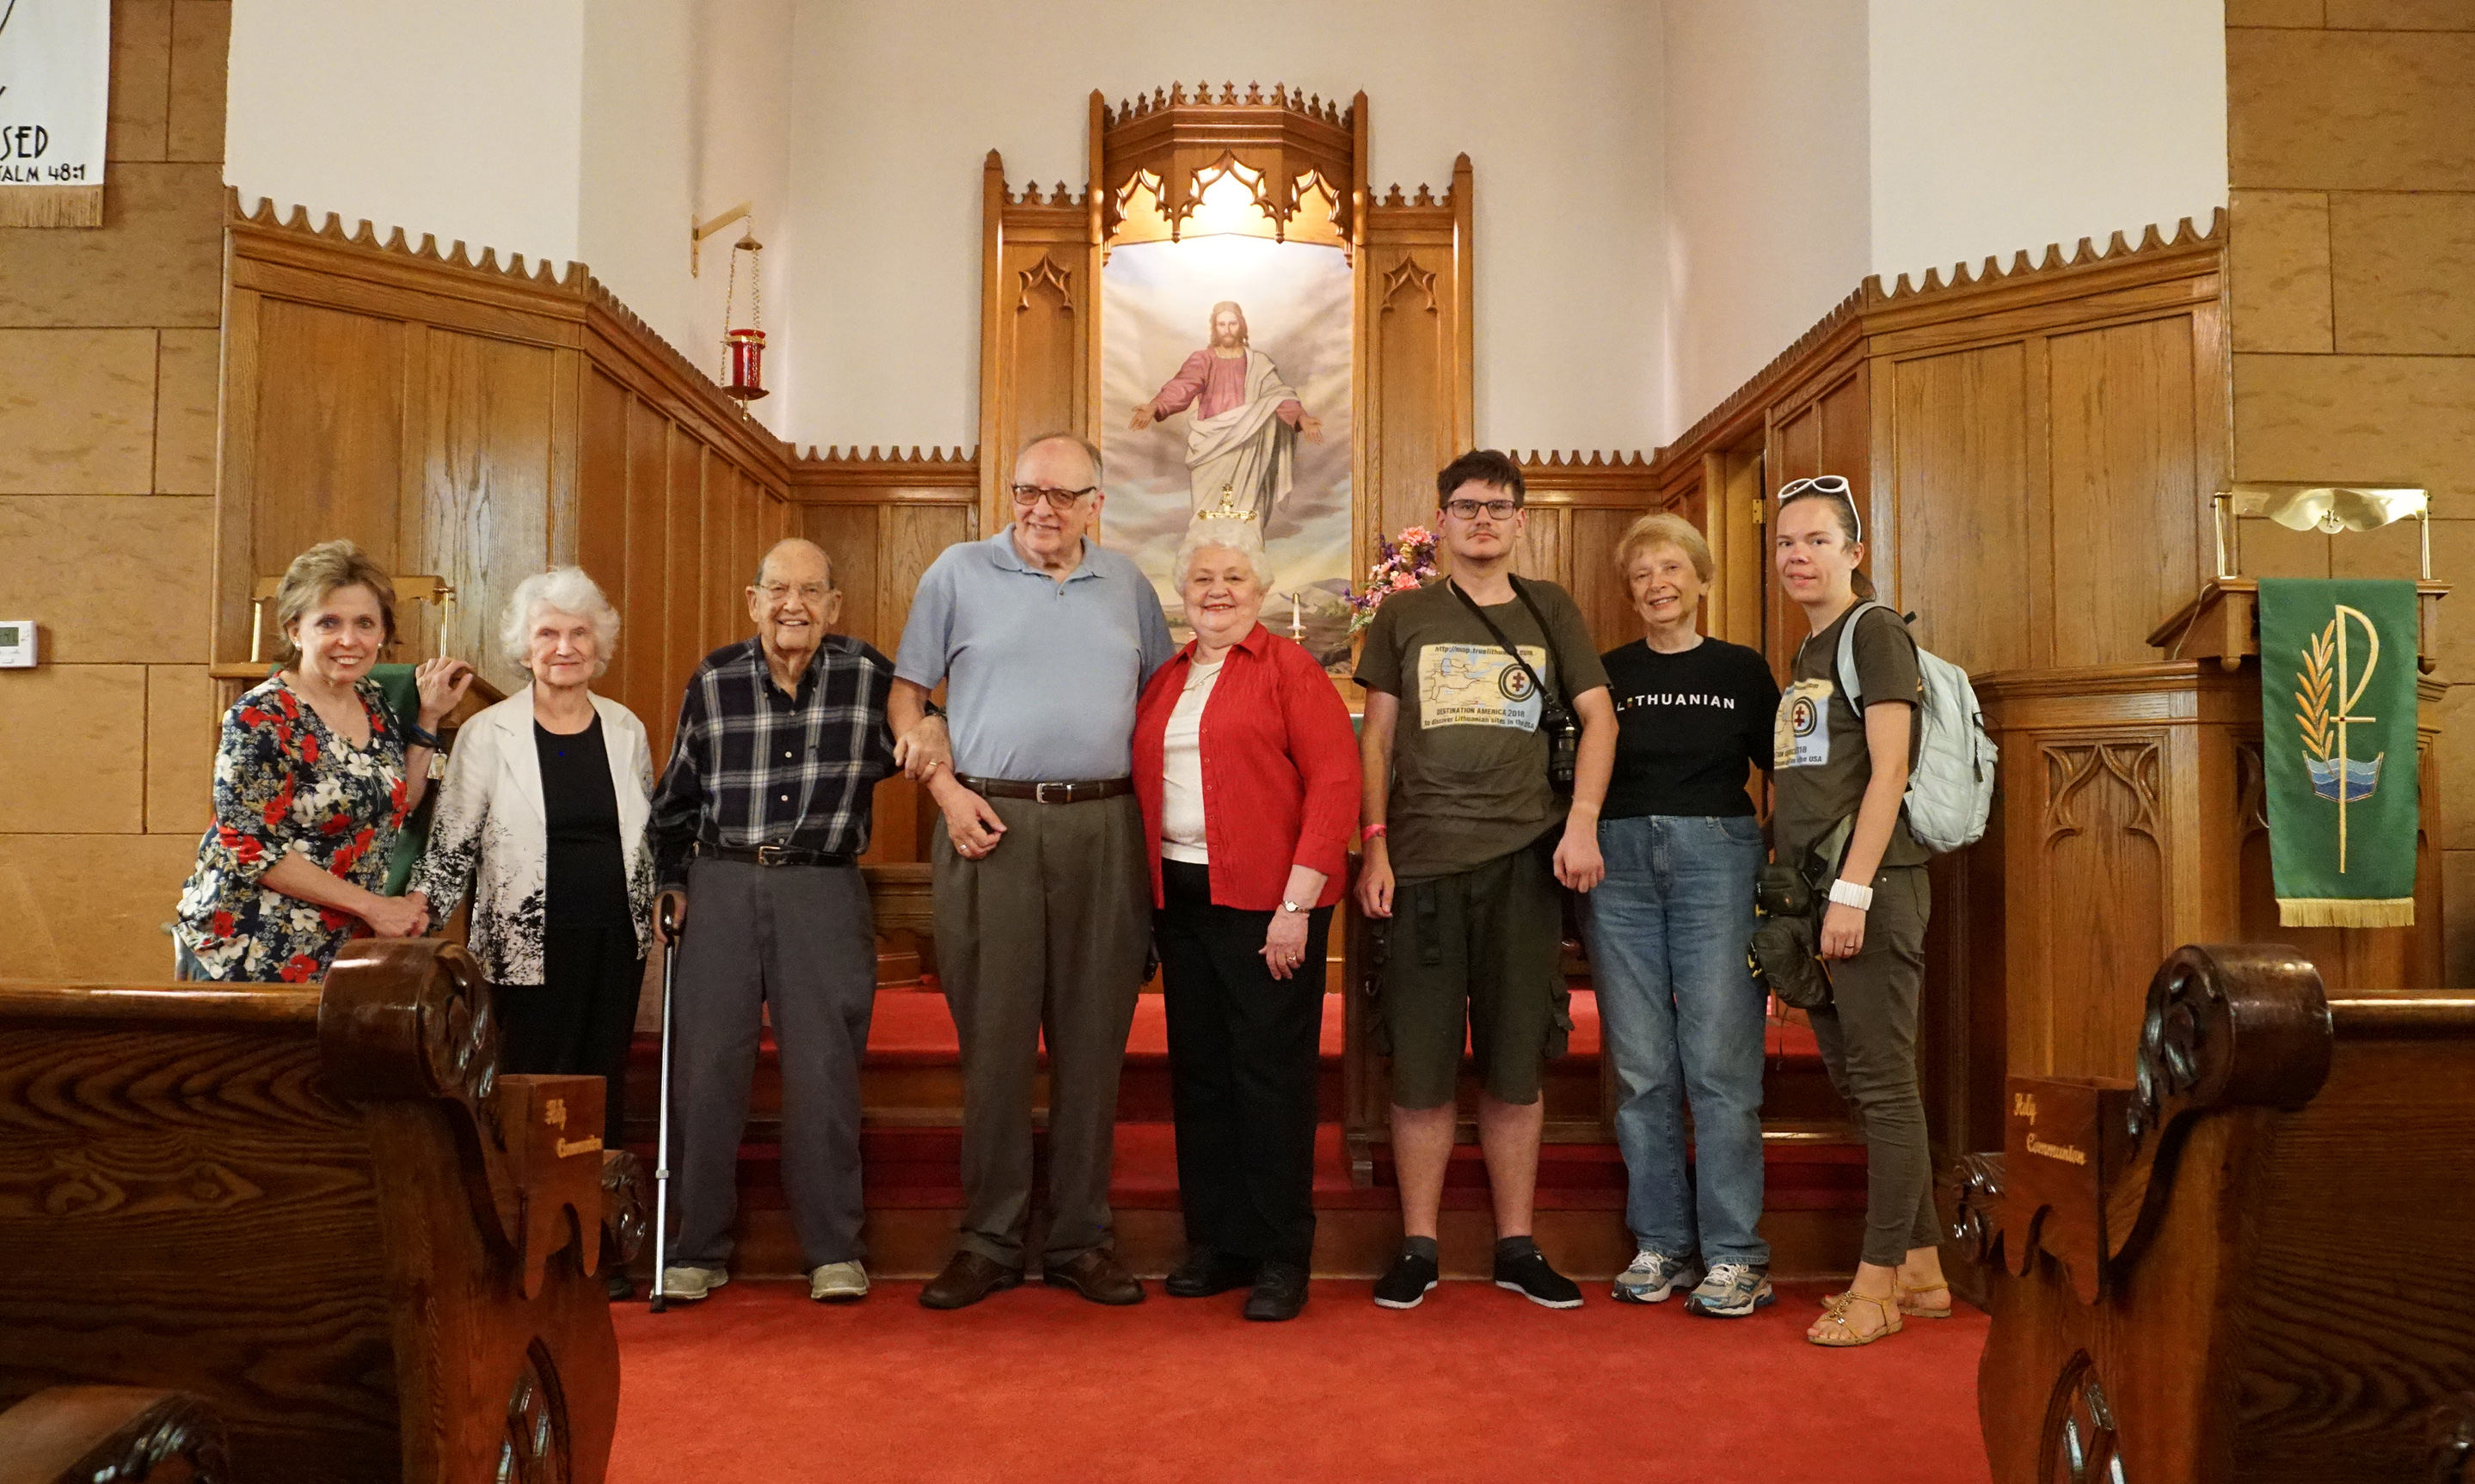 Heritage mappers meet with local Lithuanians at the Jerusalem Lutheran Church in Collinsville, Illinois. This is where Rep. John Shimkus' grandparents worshipped. From left: Loretta Grybinas-Goodin, Virginia Grybinas, Rev. Dr. Alvin V. Kollmann (retired pastor), Rev. Dr. Douglas A. Nicely (current pastor), Vicki Nicely, Augustinas Žemaitis, June Launhardt, and Aistė Žemaitienė. Photos by Sandra Baksys